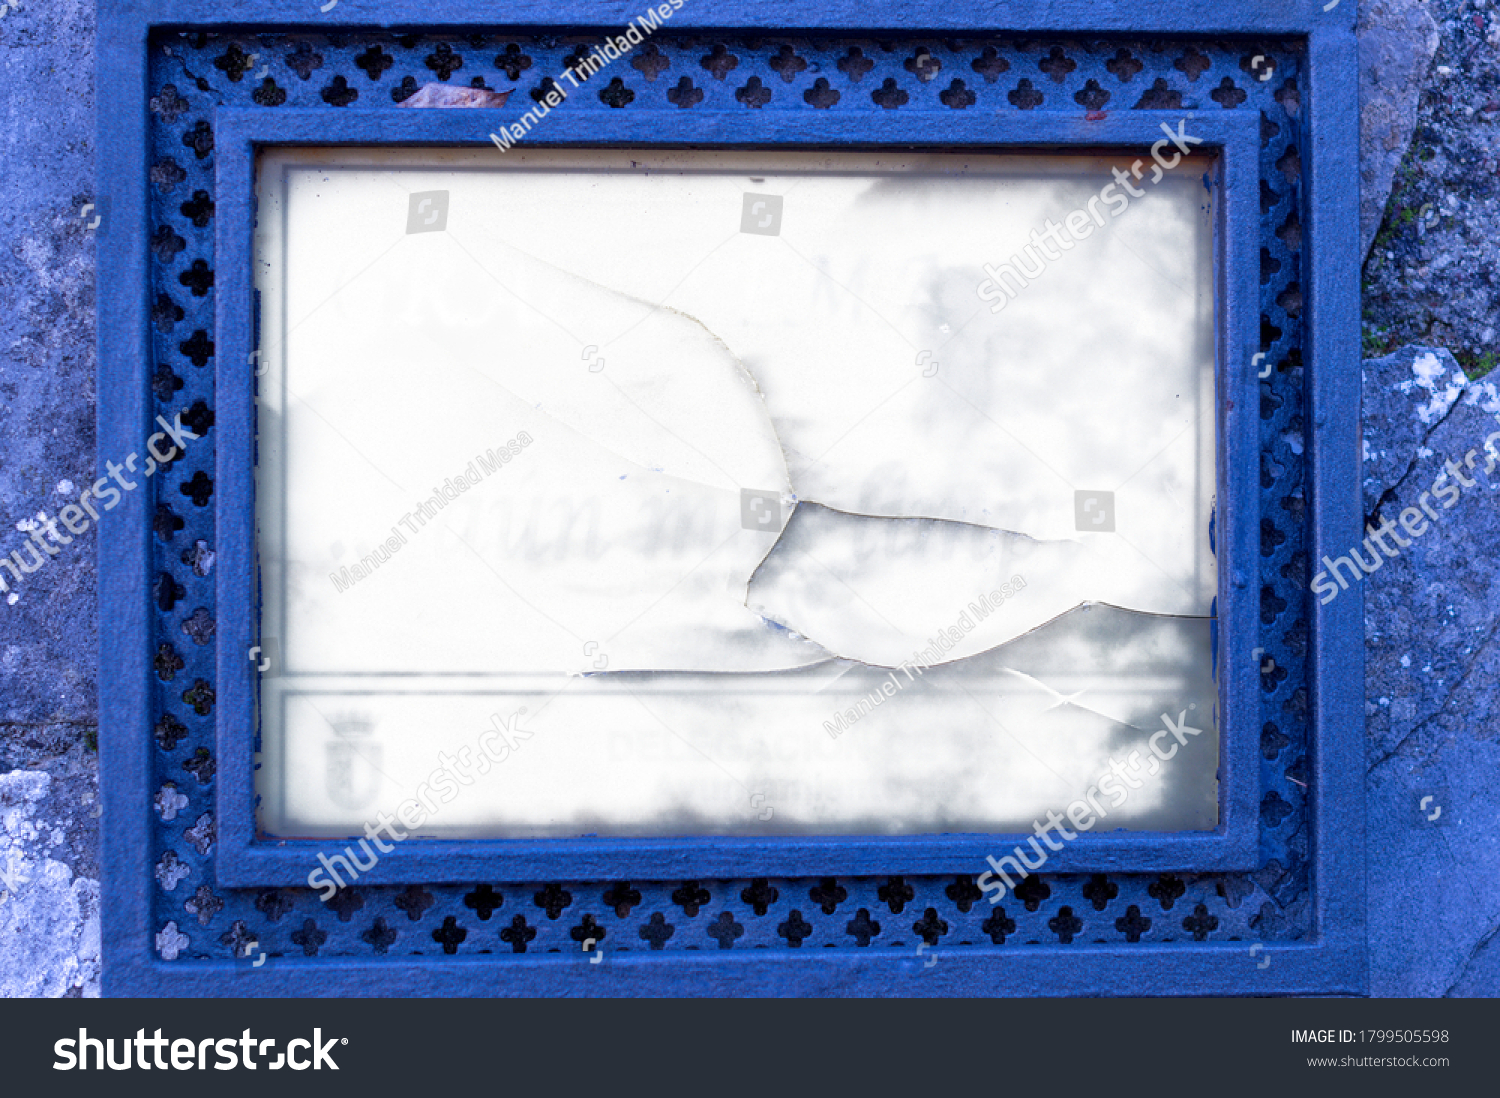 stock-photo-rustic-frame-for-advertising